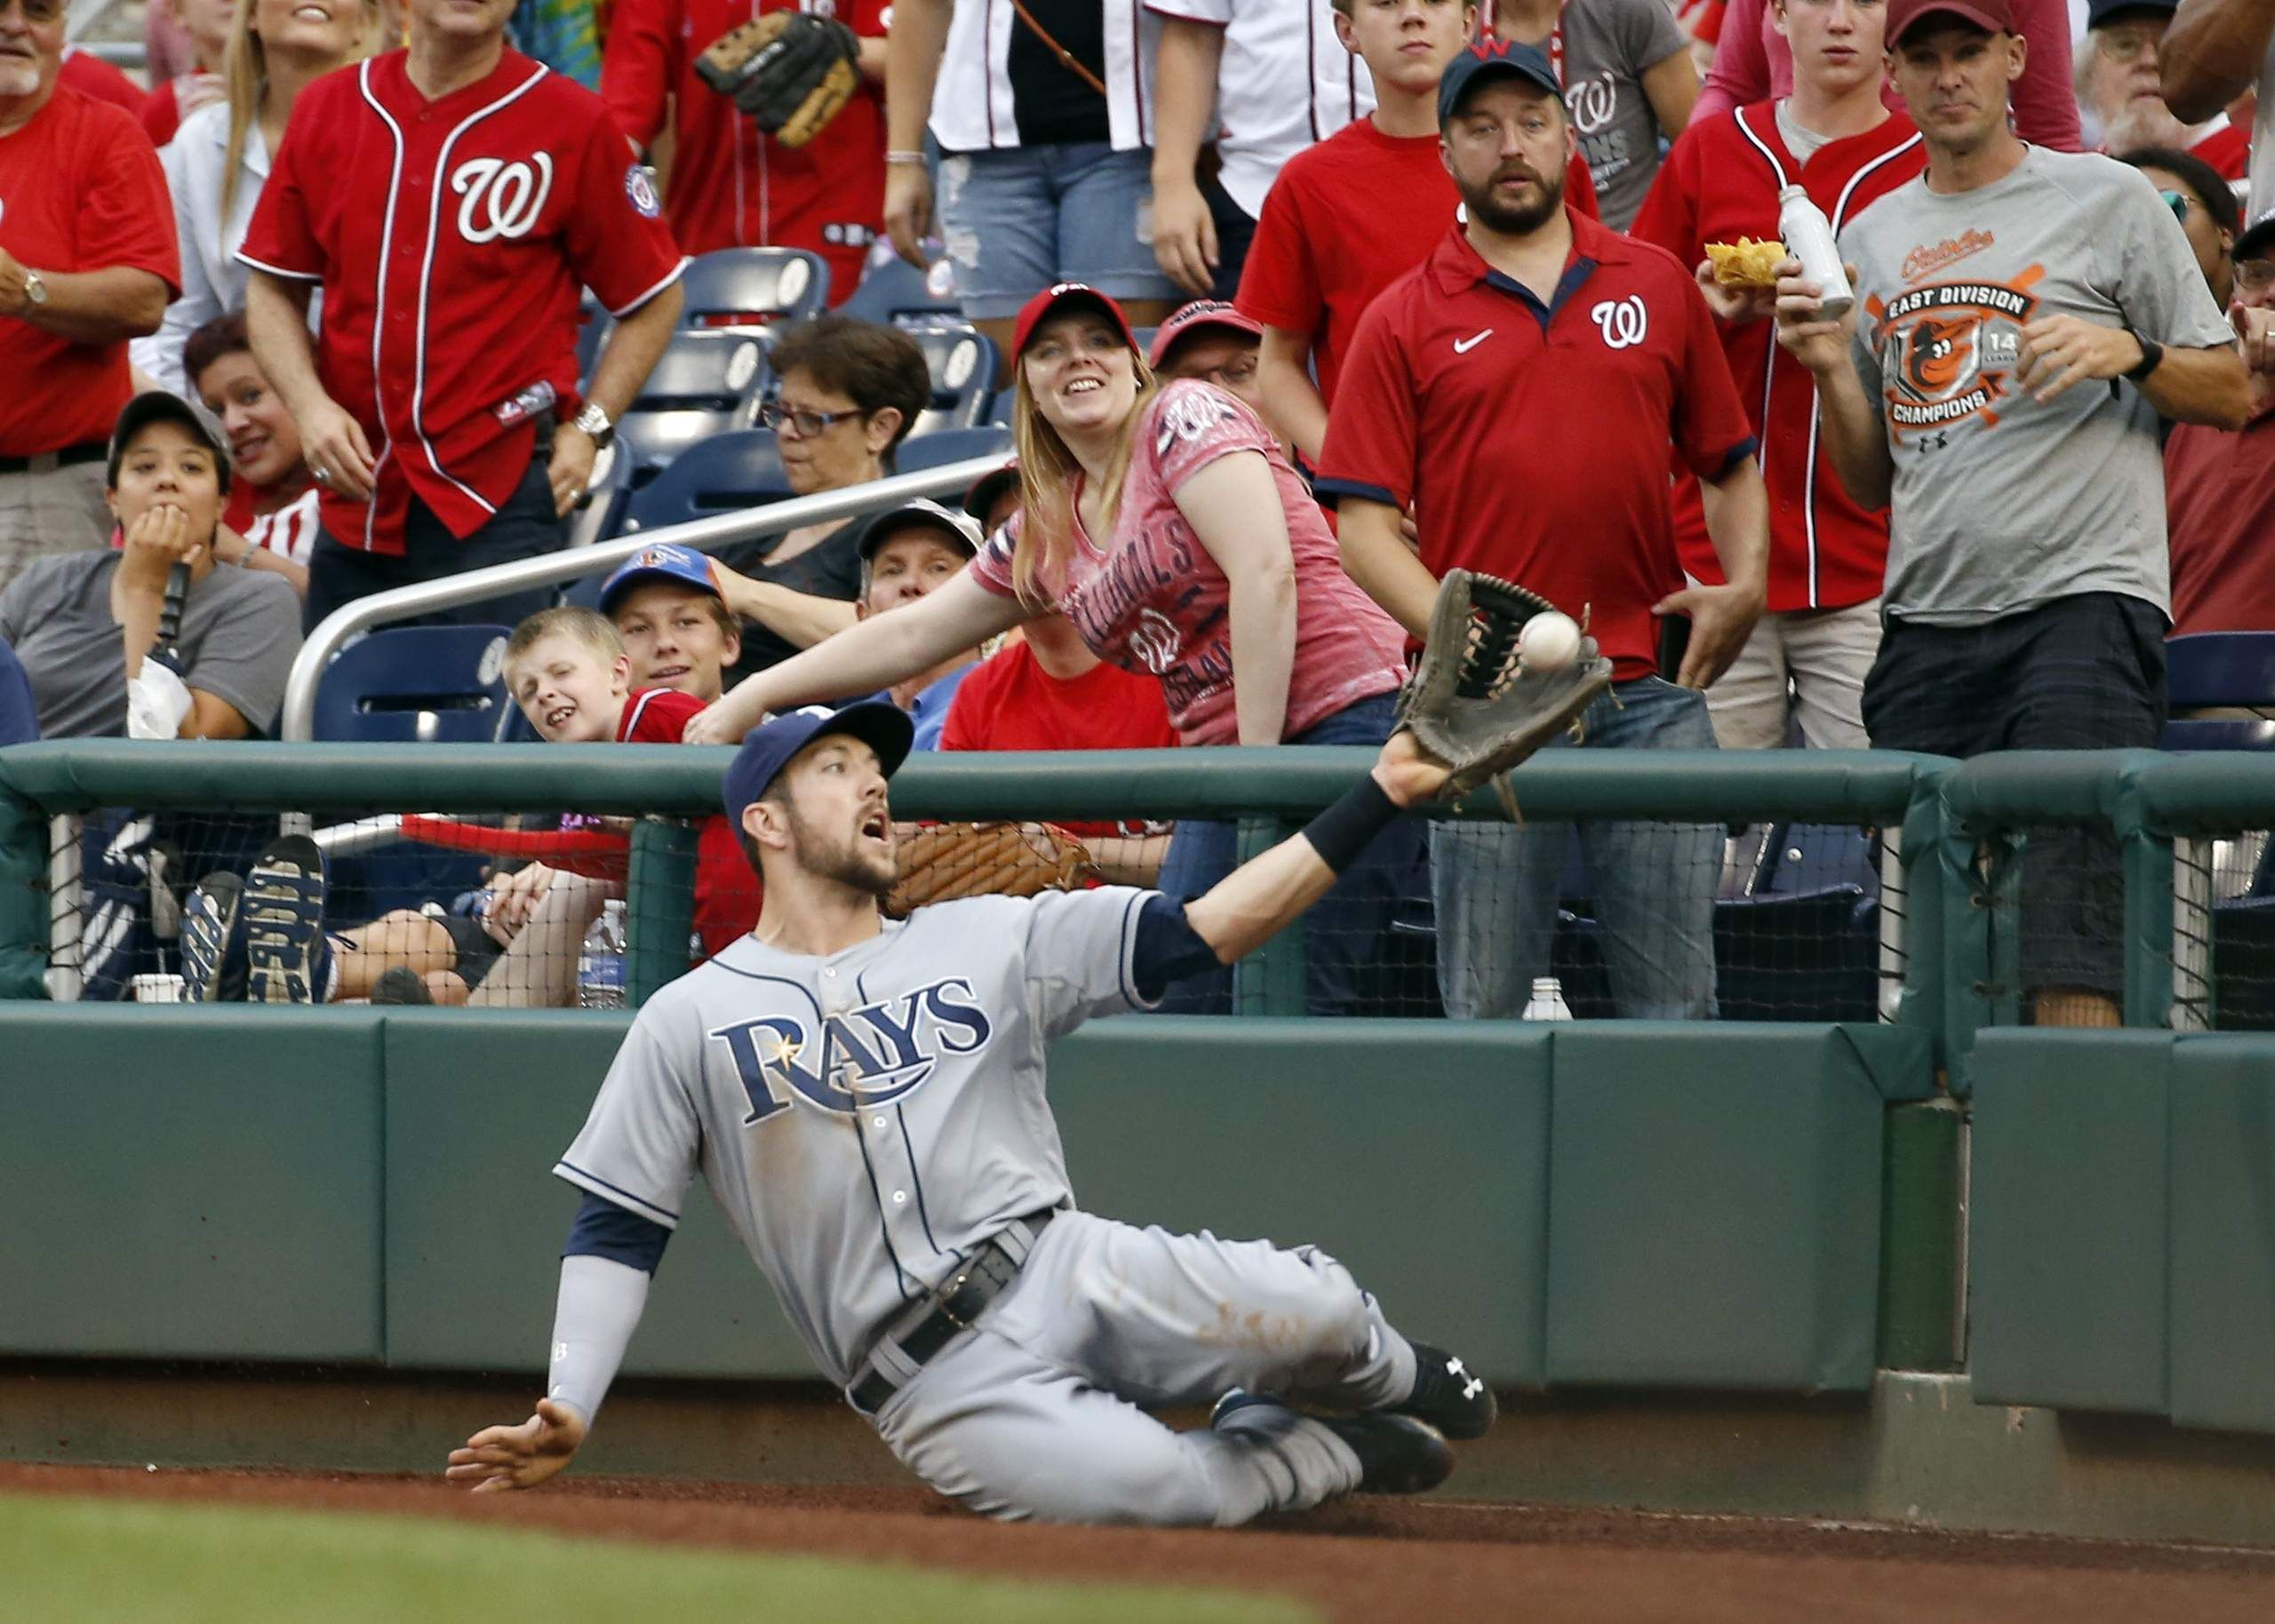 Geltz Bullpen Come Through In Soggy Rays Win Bullpen Tampa Bay Rays Nationals Park